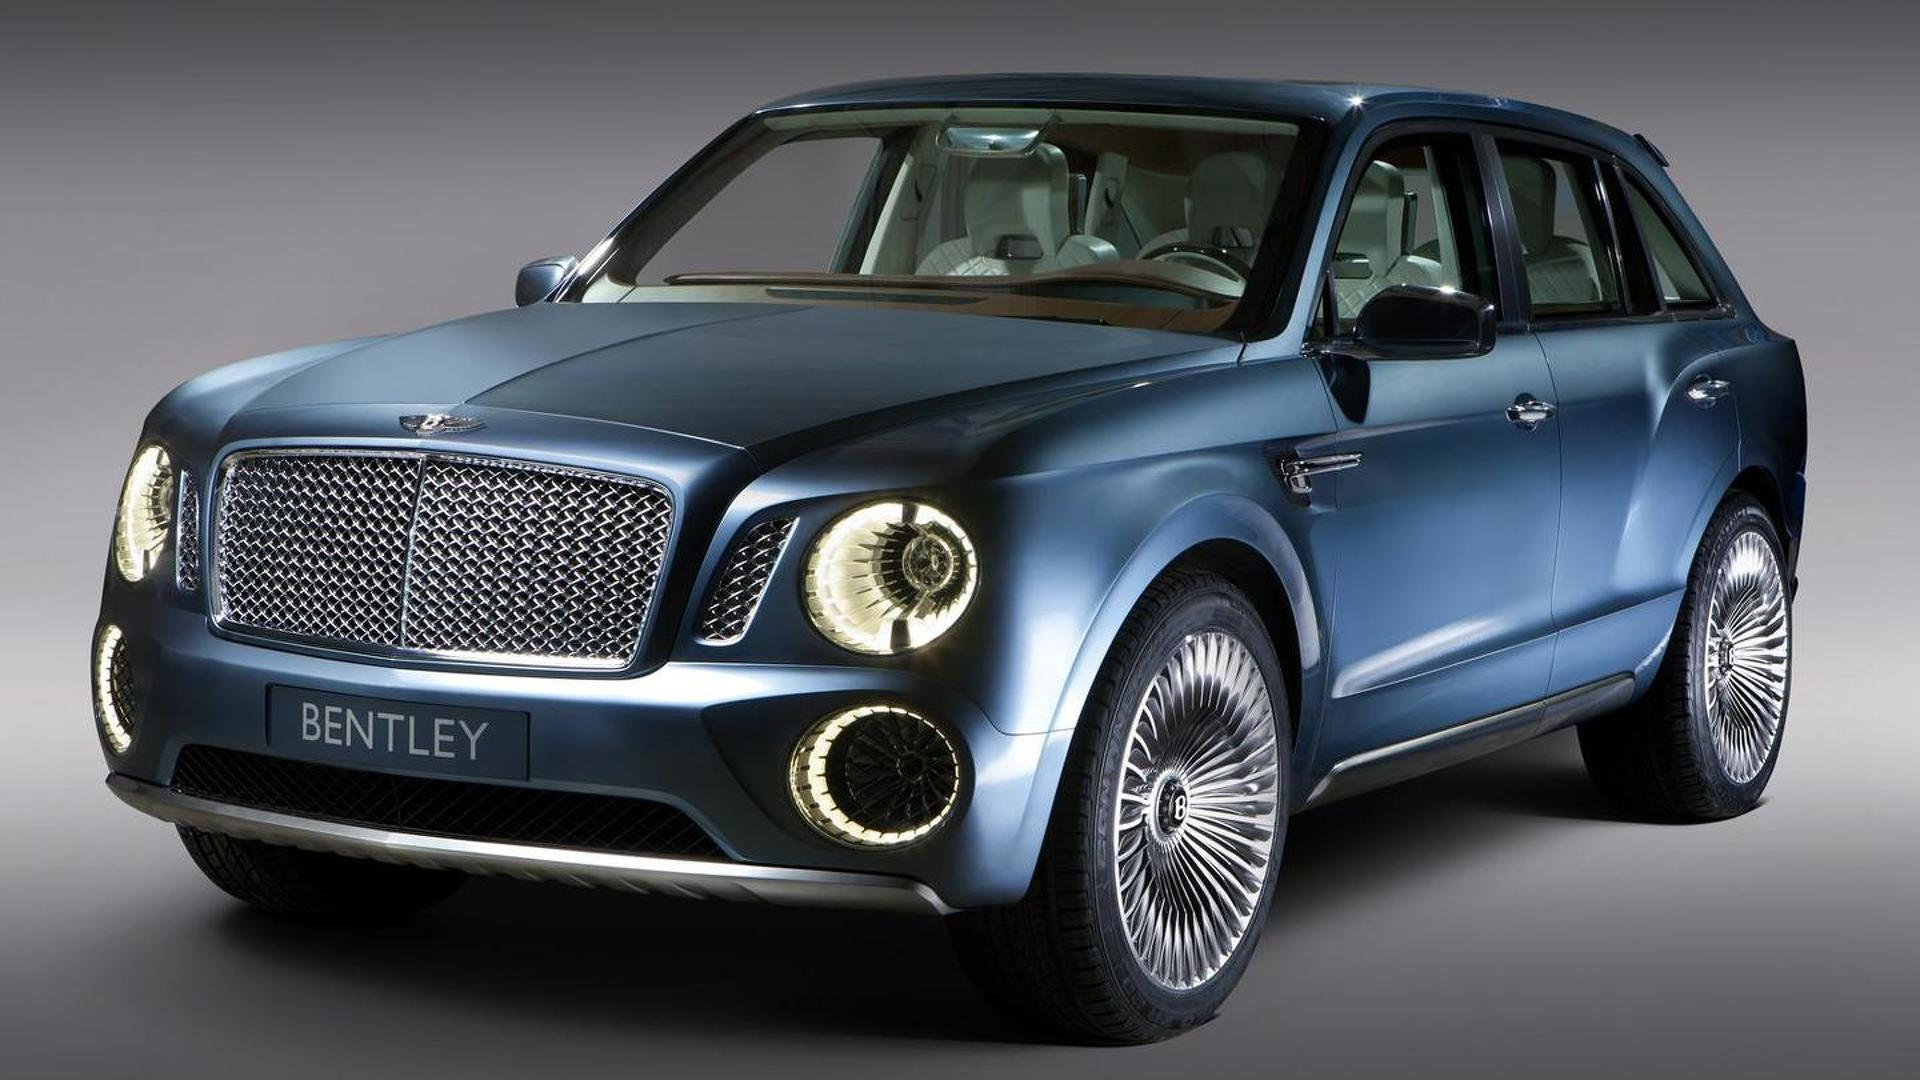 Bentley CEO confirms plans for a hybrid SUV, hybrid powertrain to be offered across the lineup